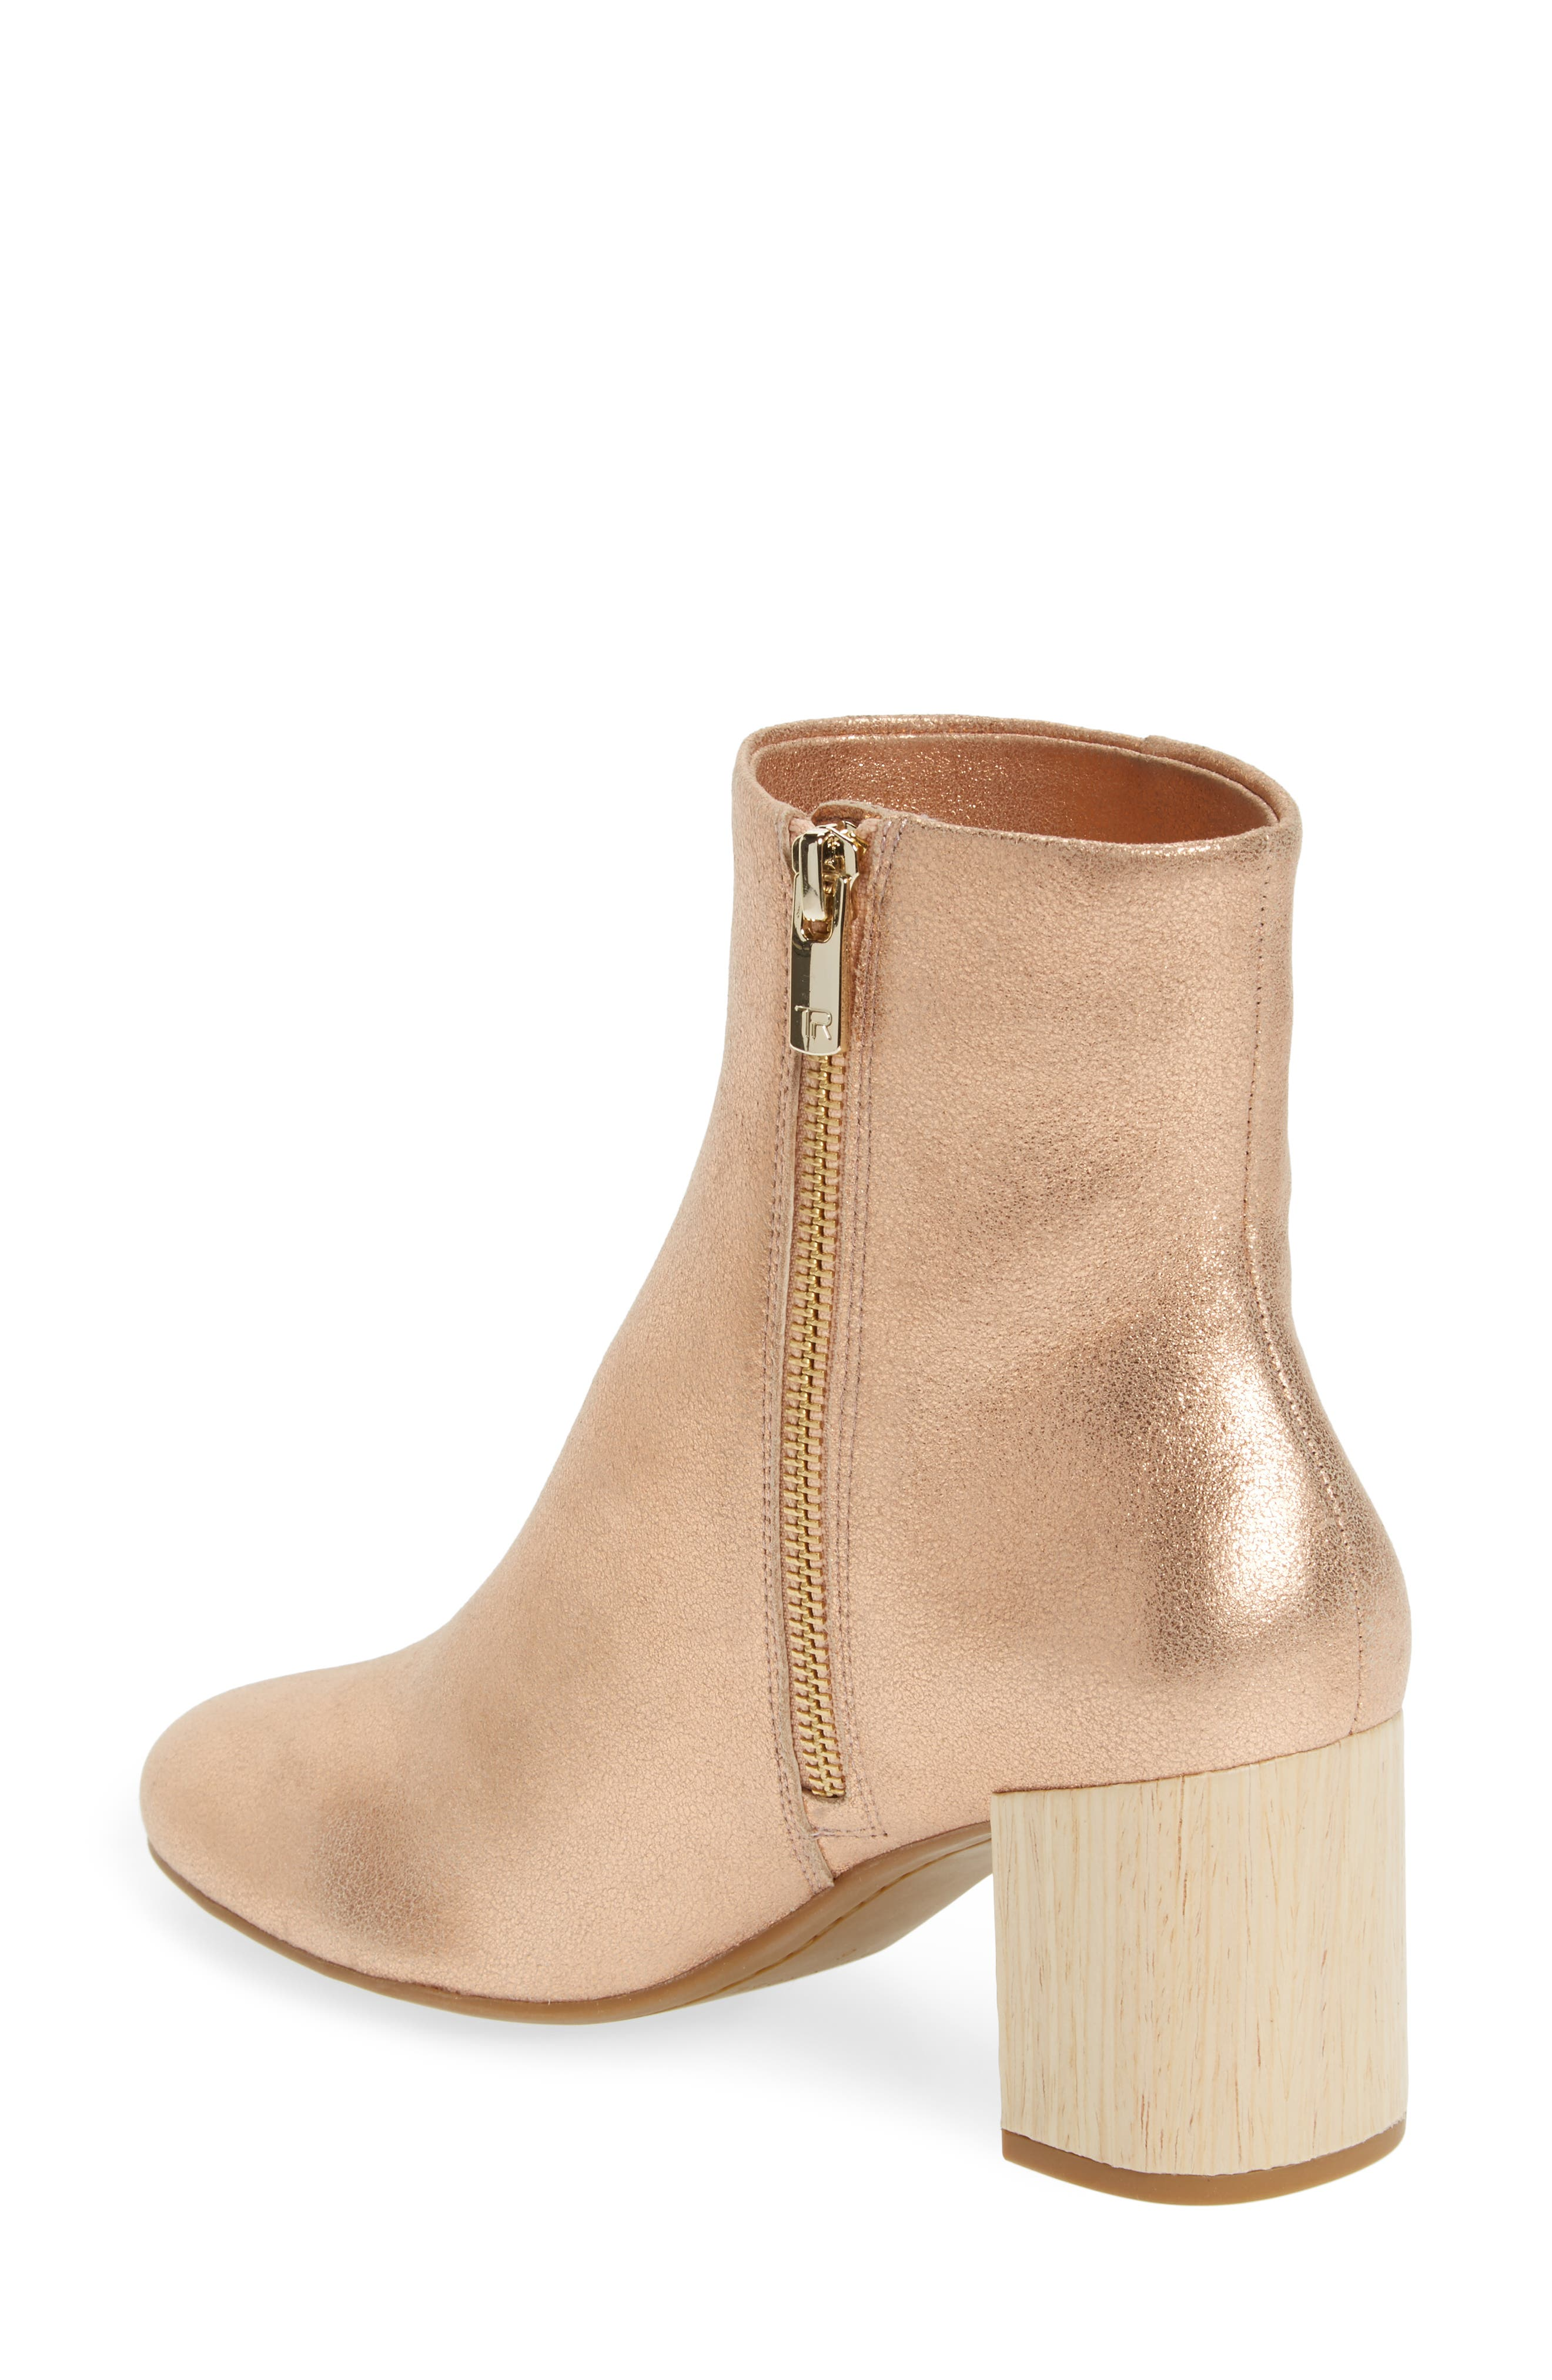 Cassidy Block Heel Bootie,                             Alternate thumbnail 2, color,                             Rose Gold Leather